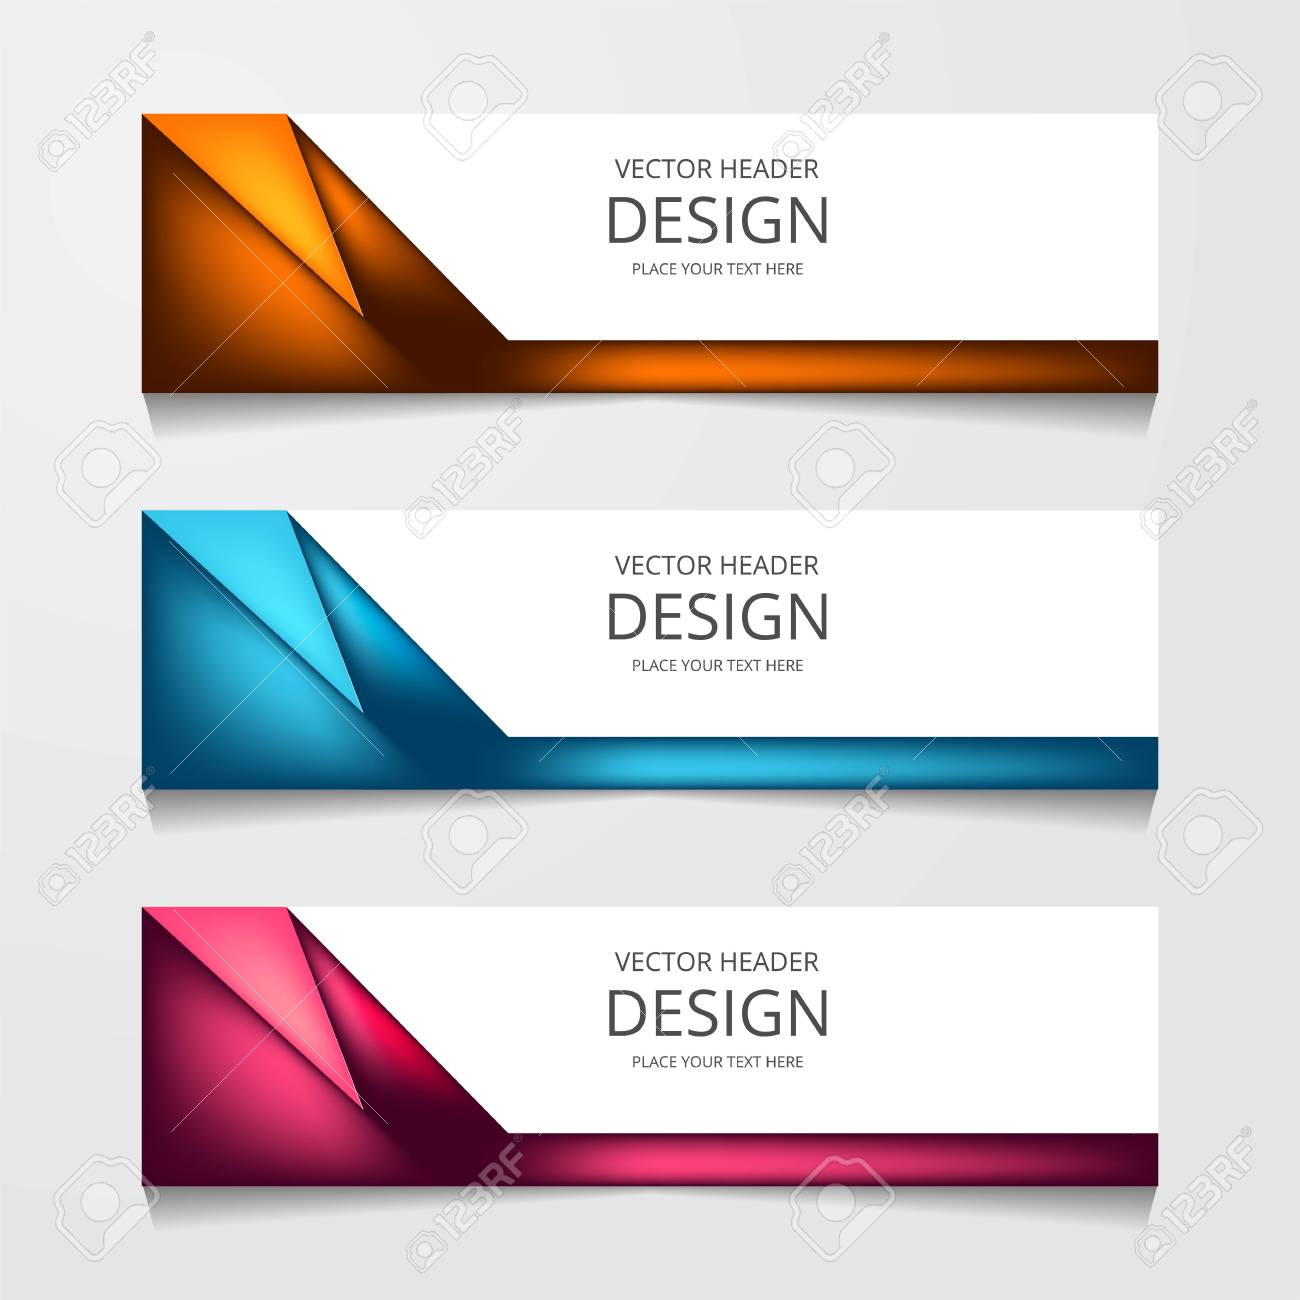 Vector Abstract Web Banner Design Template Collection Of Web